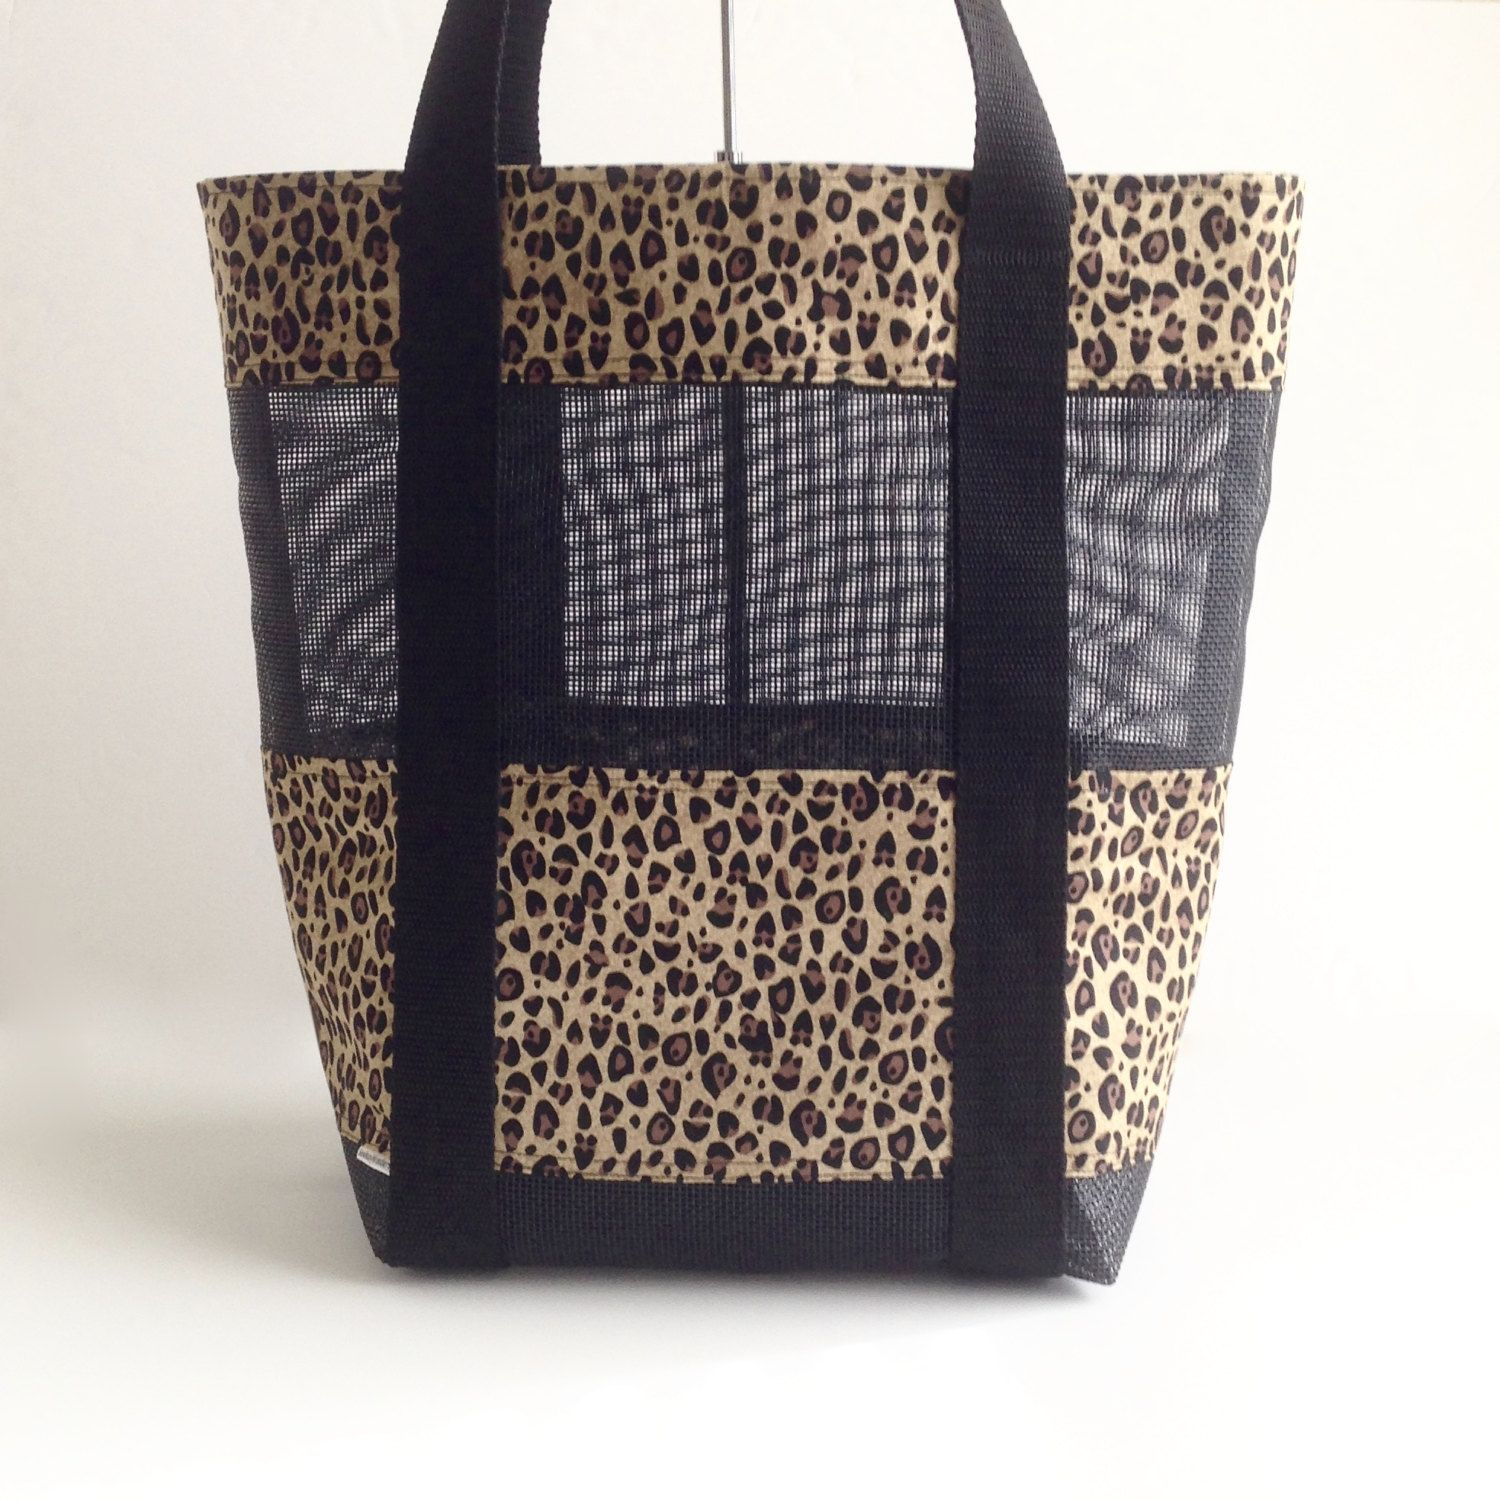 Mesh Beach Bag Leopard Black Tote Seashell Collecting